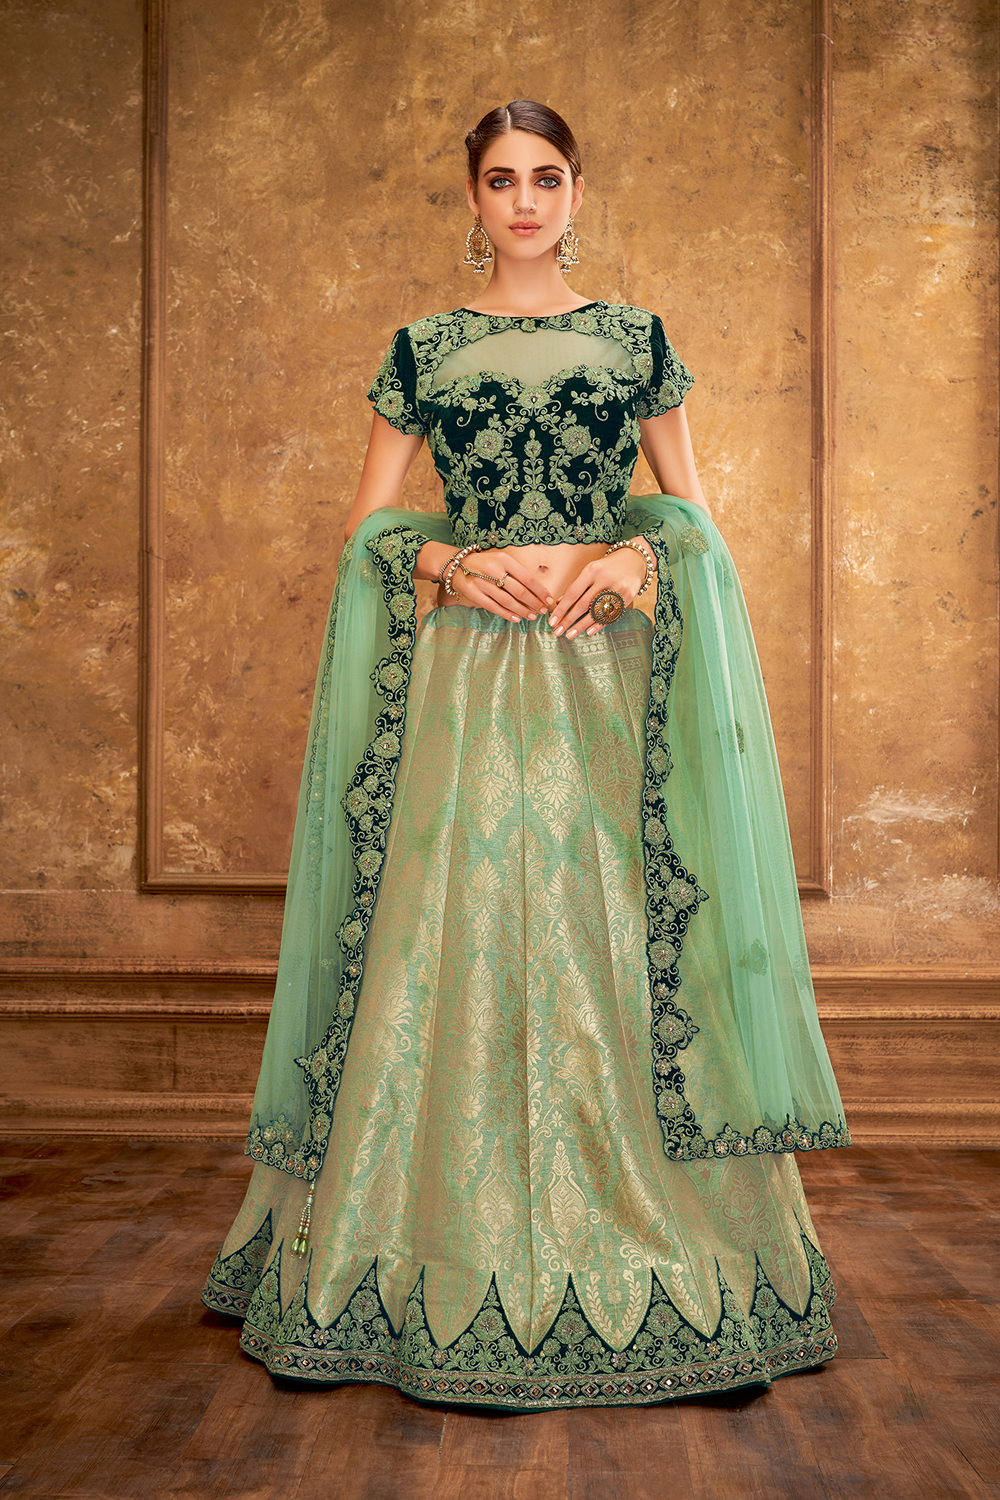 Banarasi Silk Party Wear Lehenga In Gold   C-Green Color With Embroidery Work